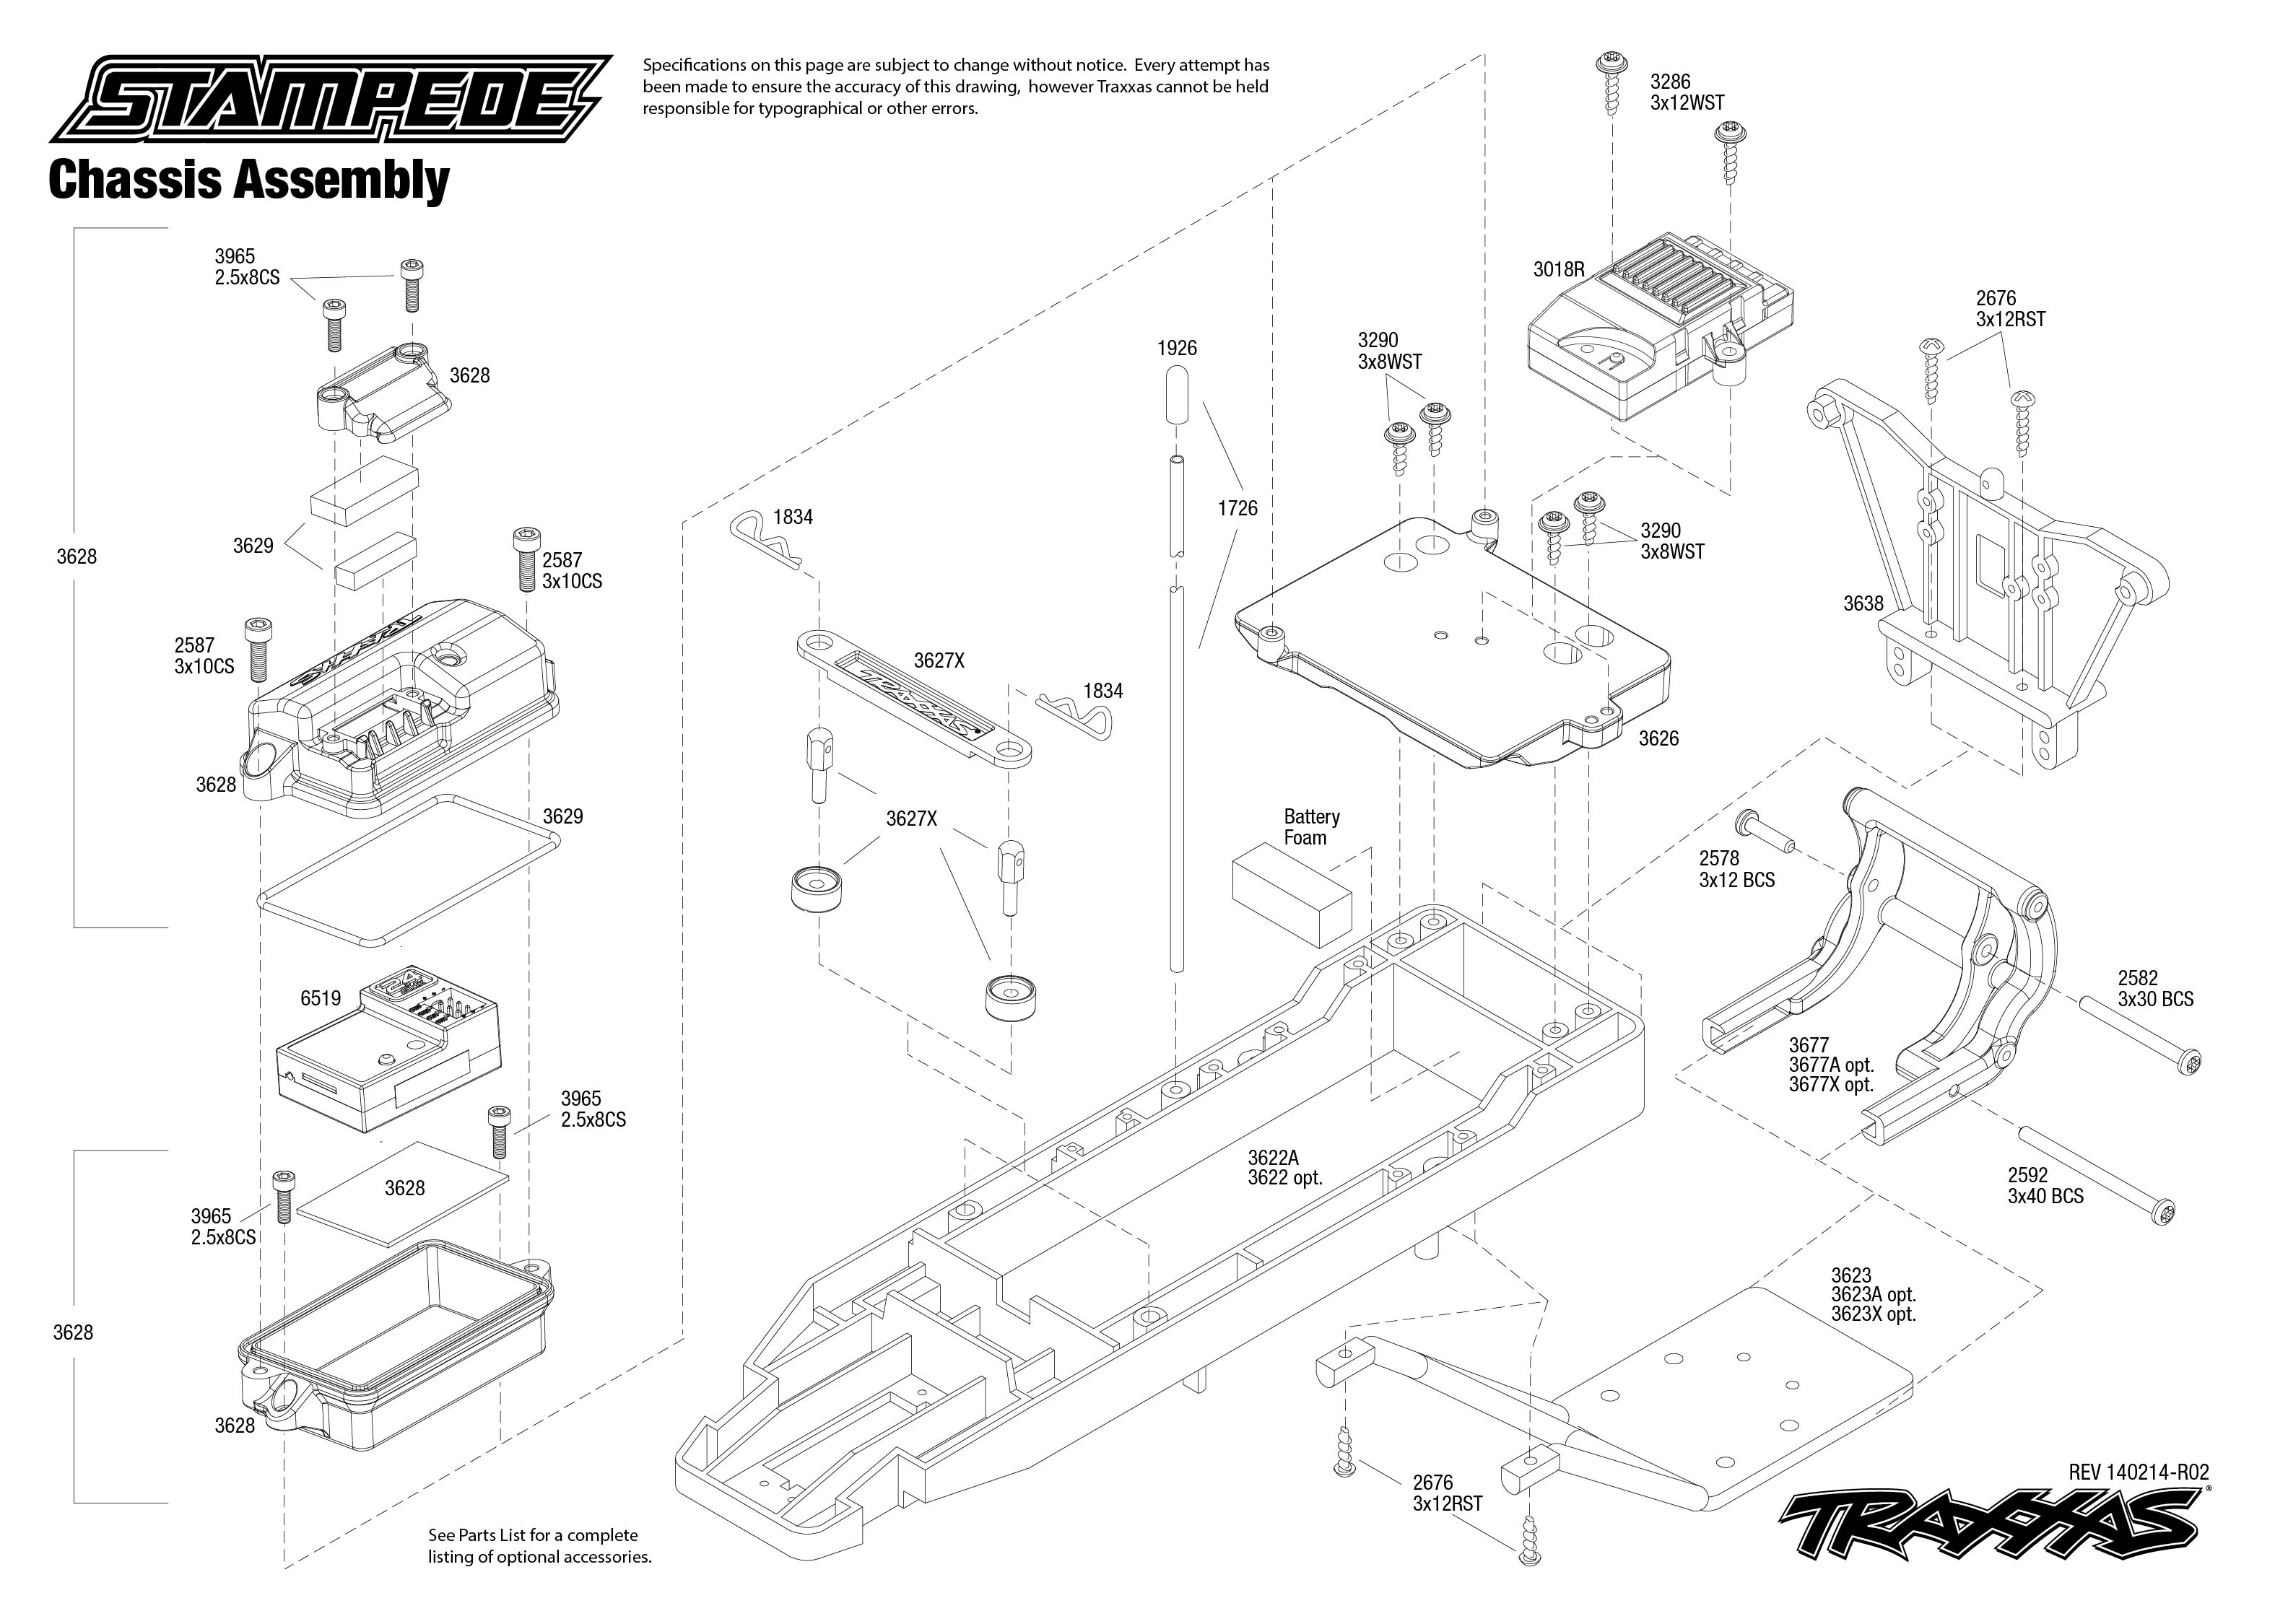 36054_explodedviews_140214_36054 Chassis Assembly slash traxxas tqi receiver wiring diagram traxxas tq 2 4ghz traxxas 6518 wiring diagram at webbmarketing.co